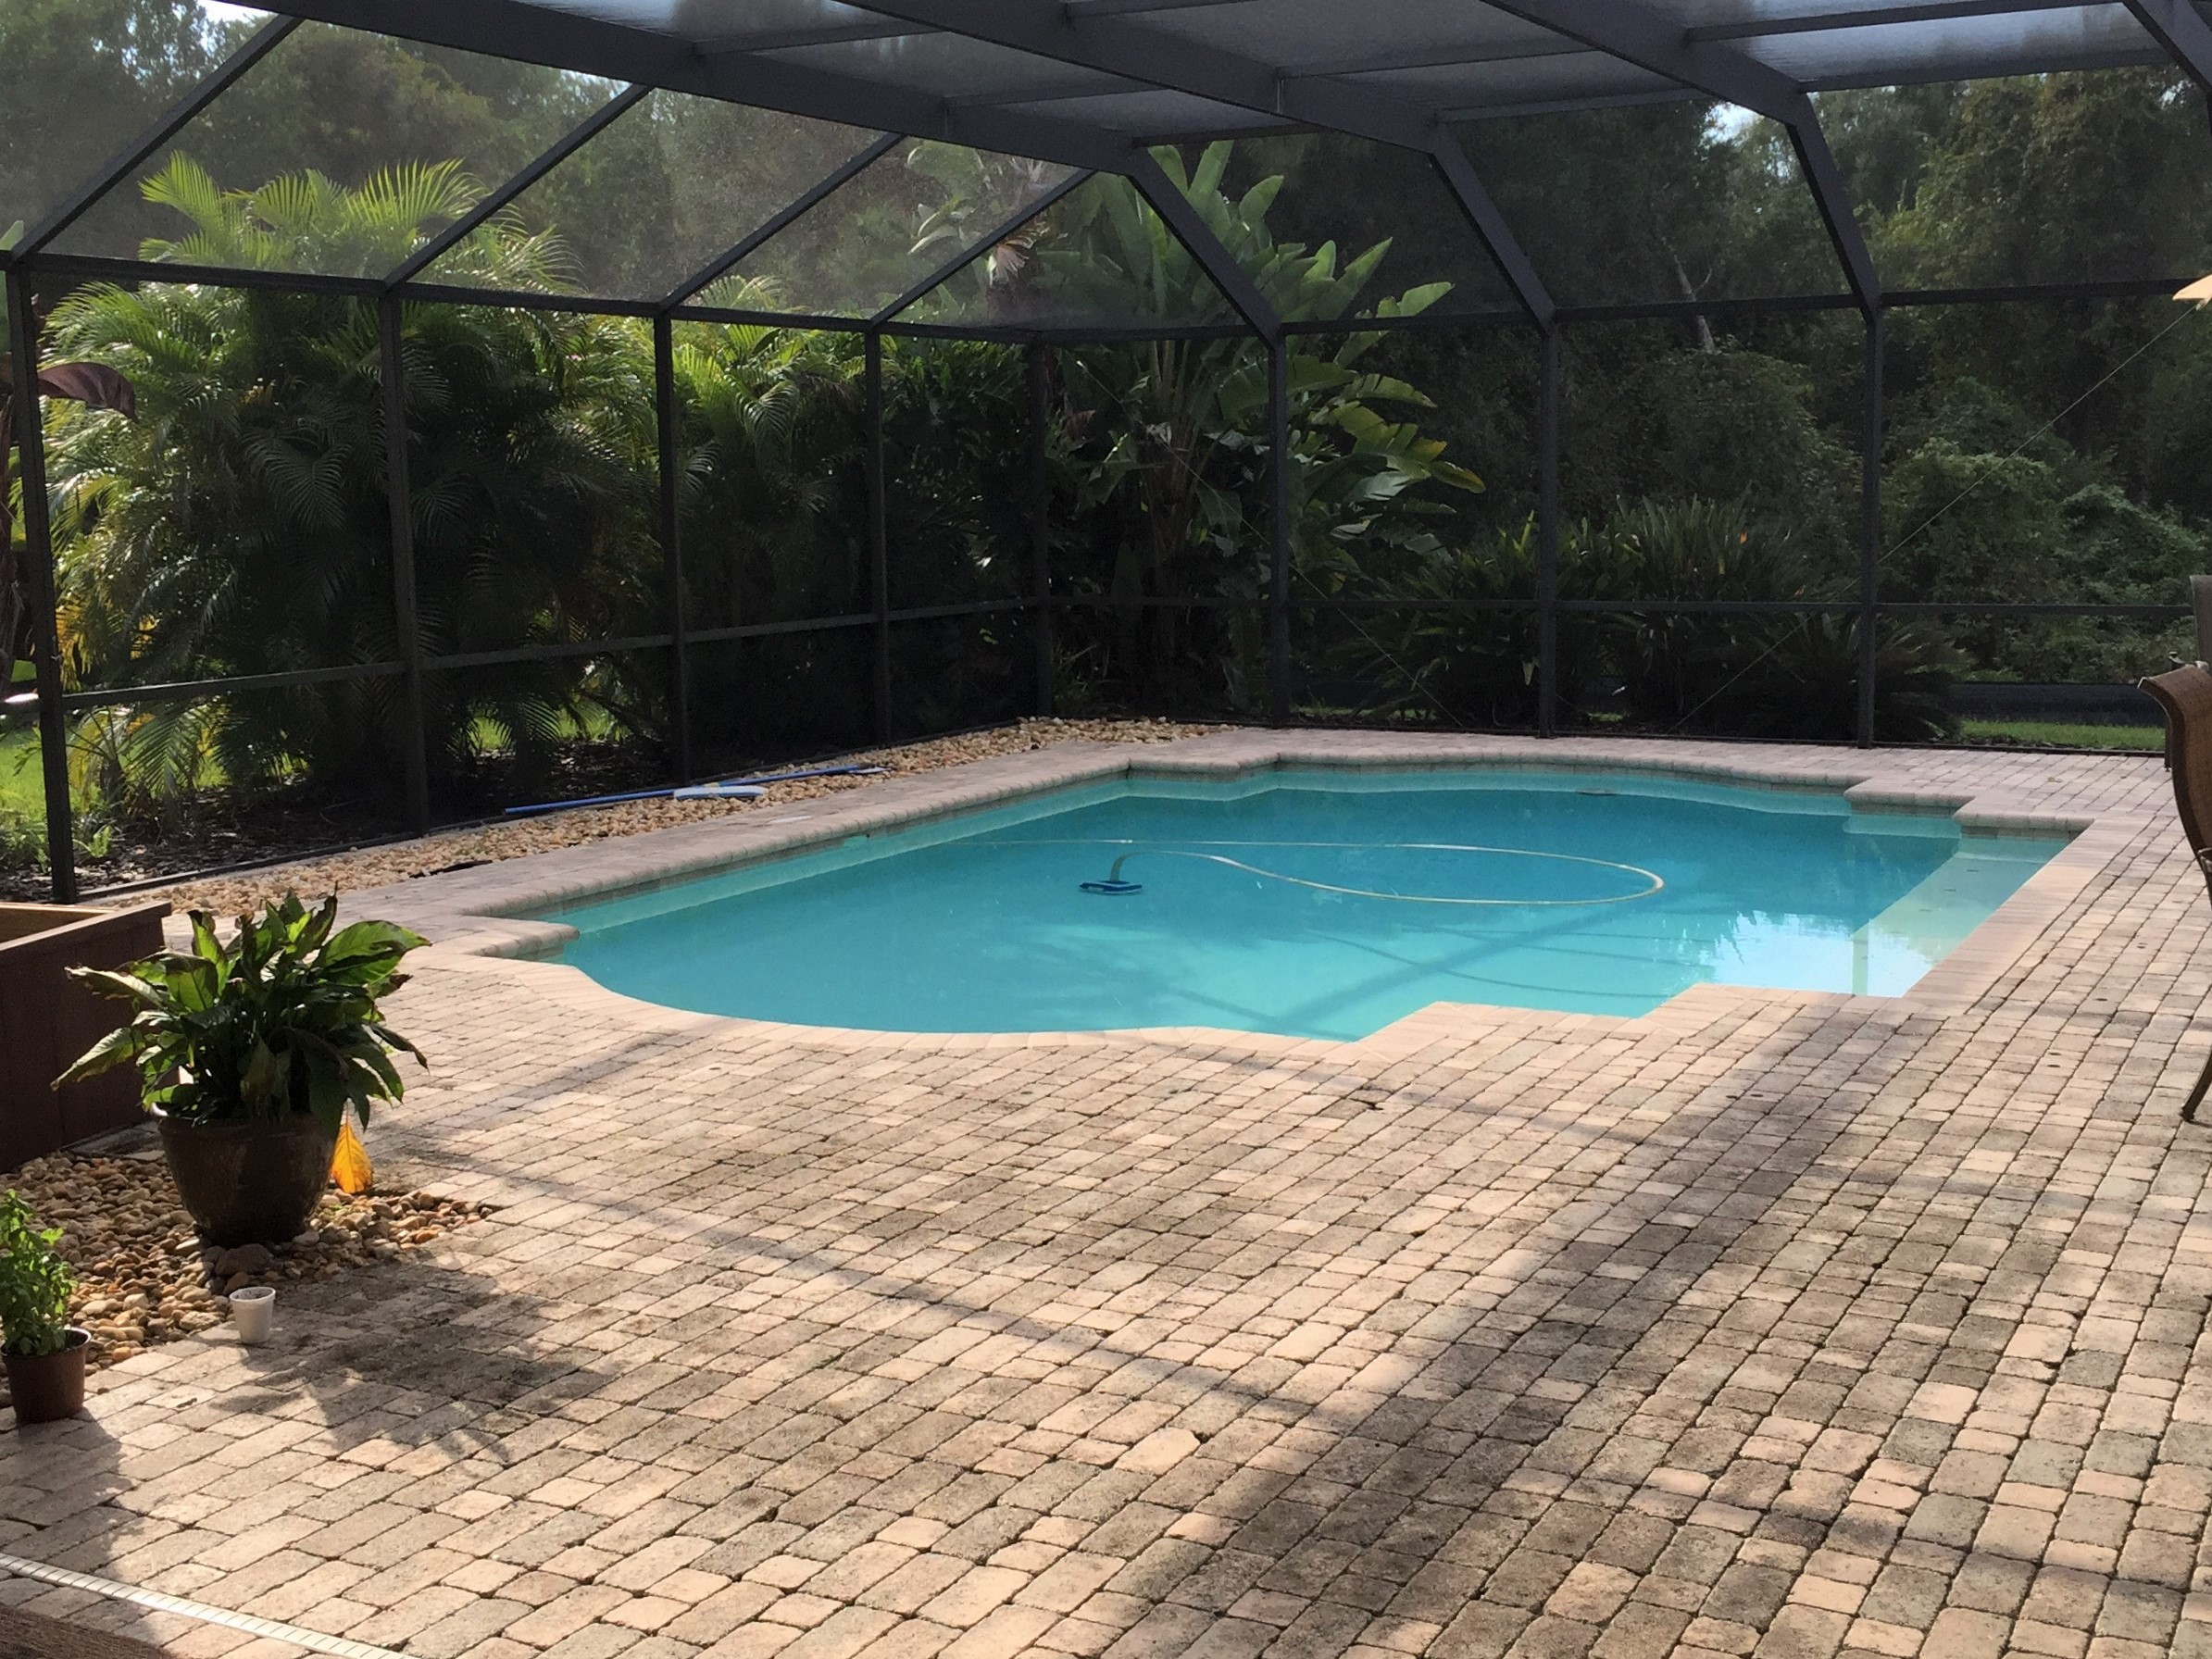 Swimming Pool Remodeling Photo Gallery - Grand Vista Pools